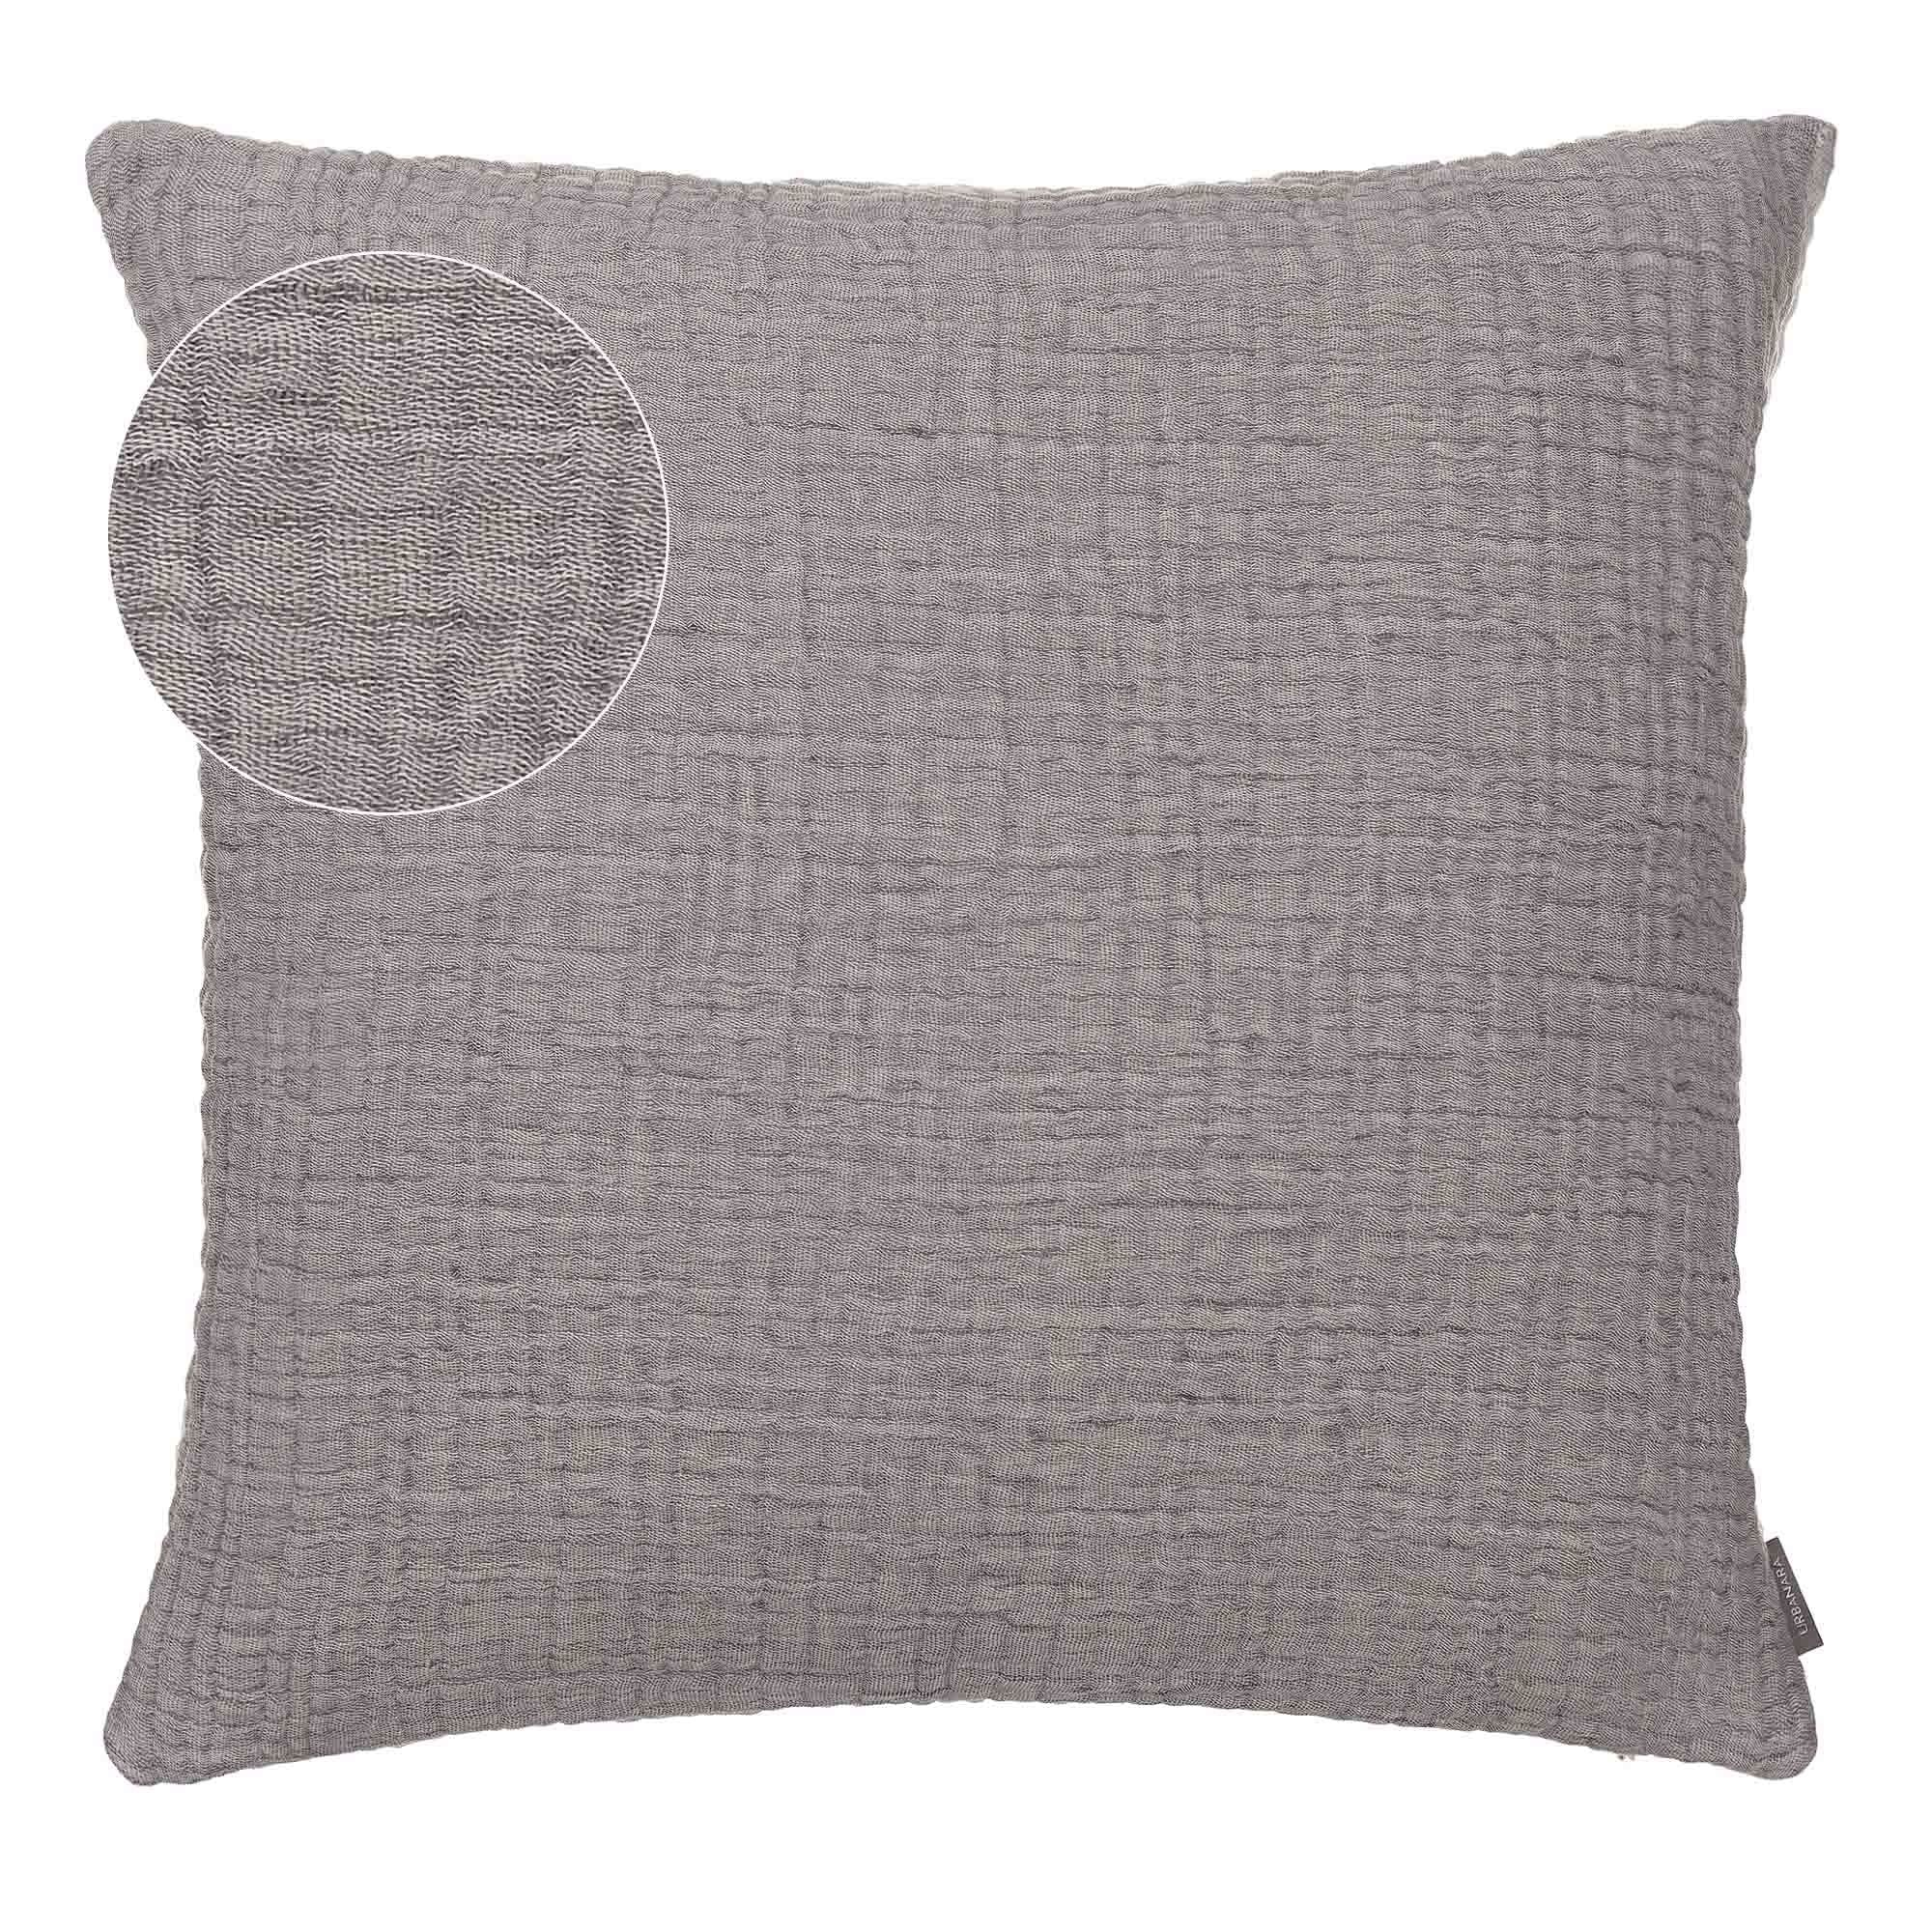 Couco Cushion [Light grey/Grey]